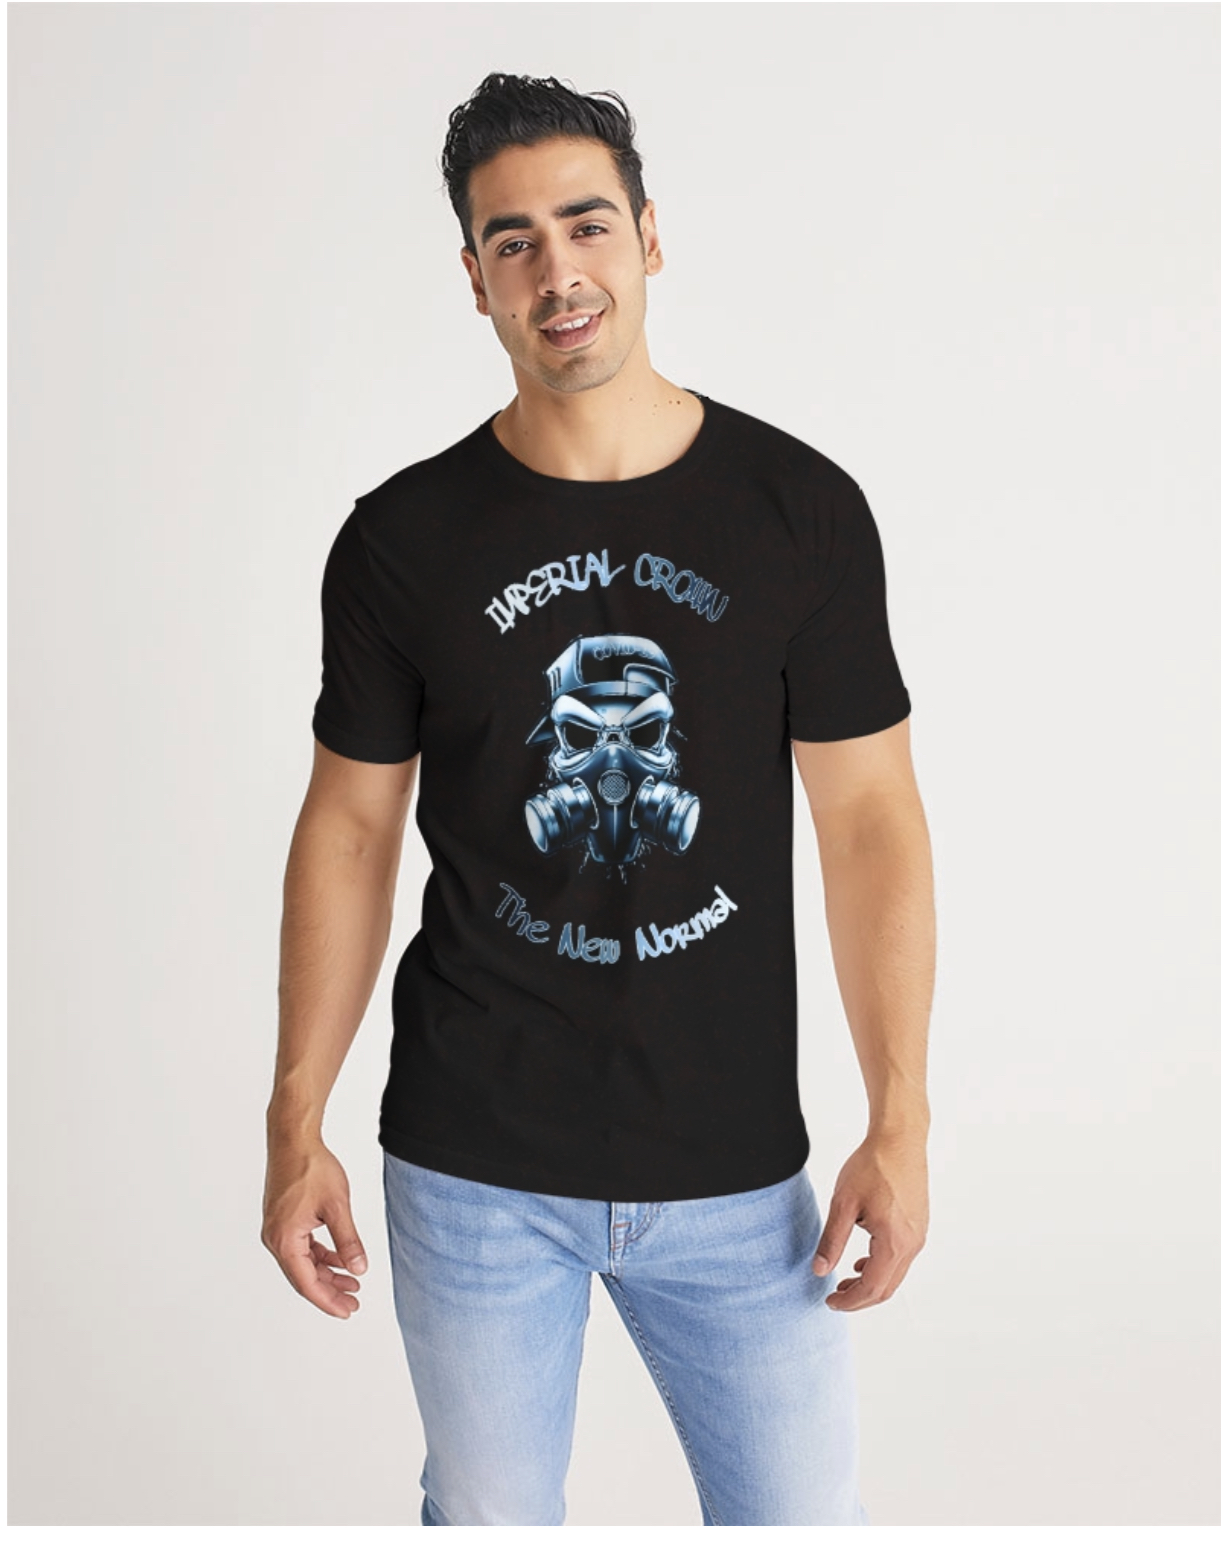 The New norm Premium black T shirt